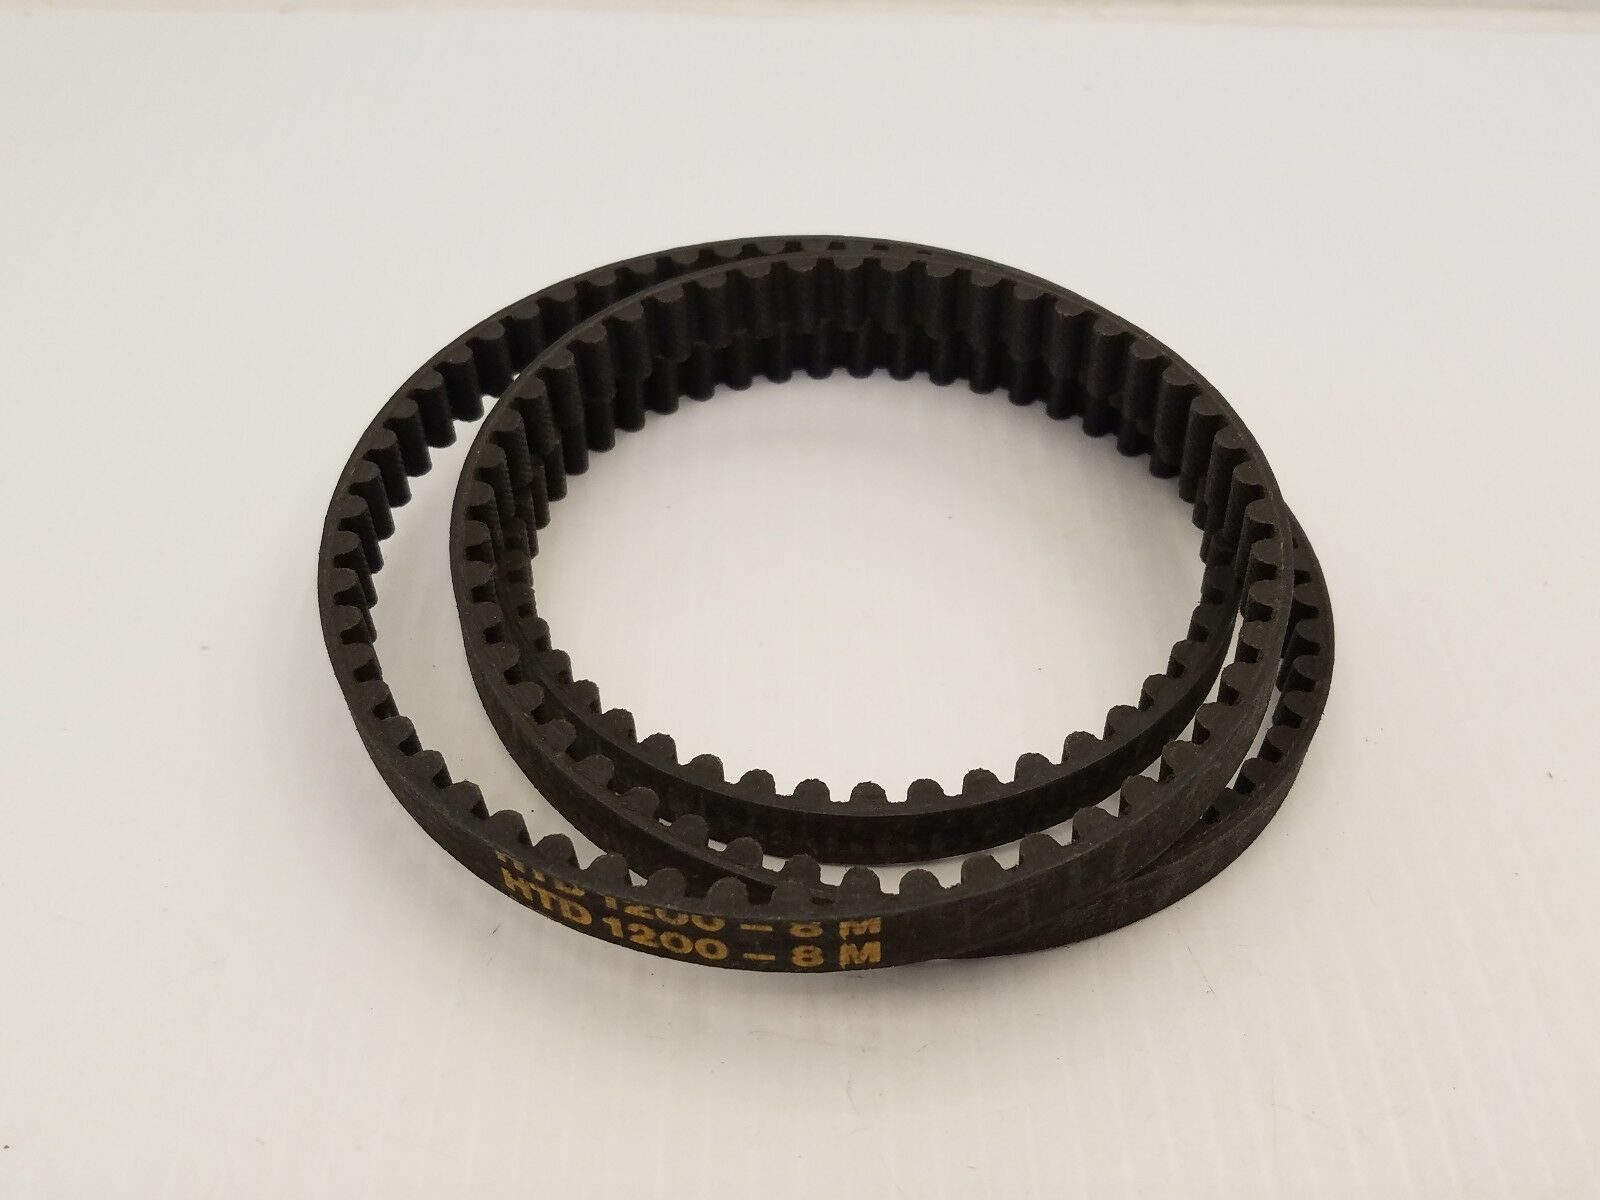 D/&D PowerDrive 656-8M-30 Timing Belt